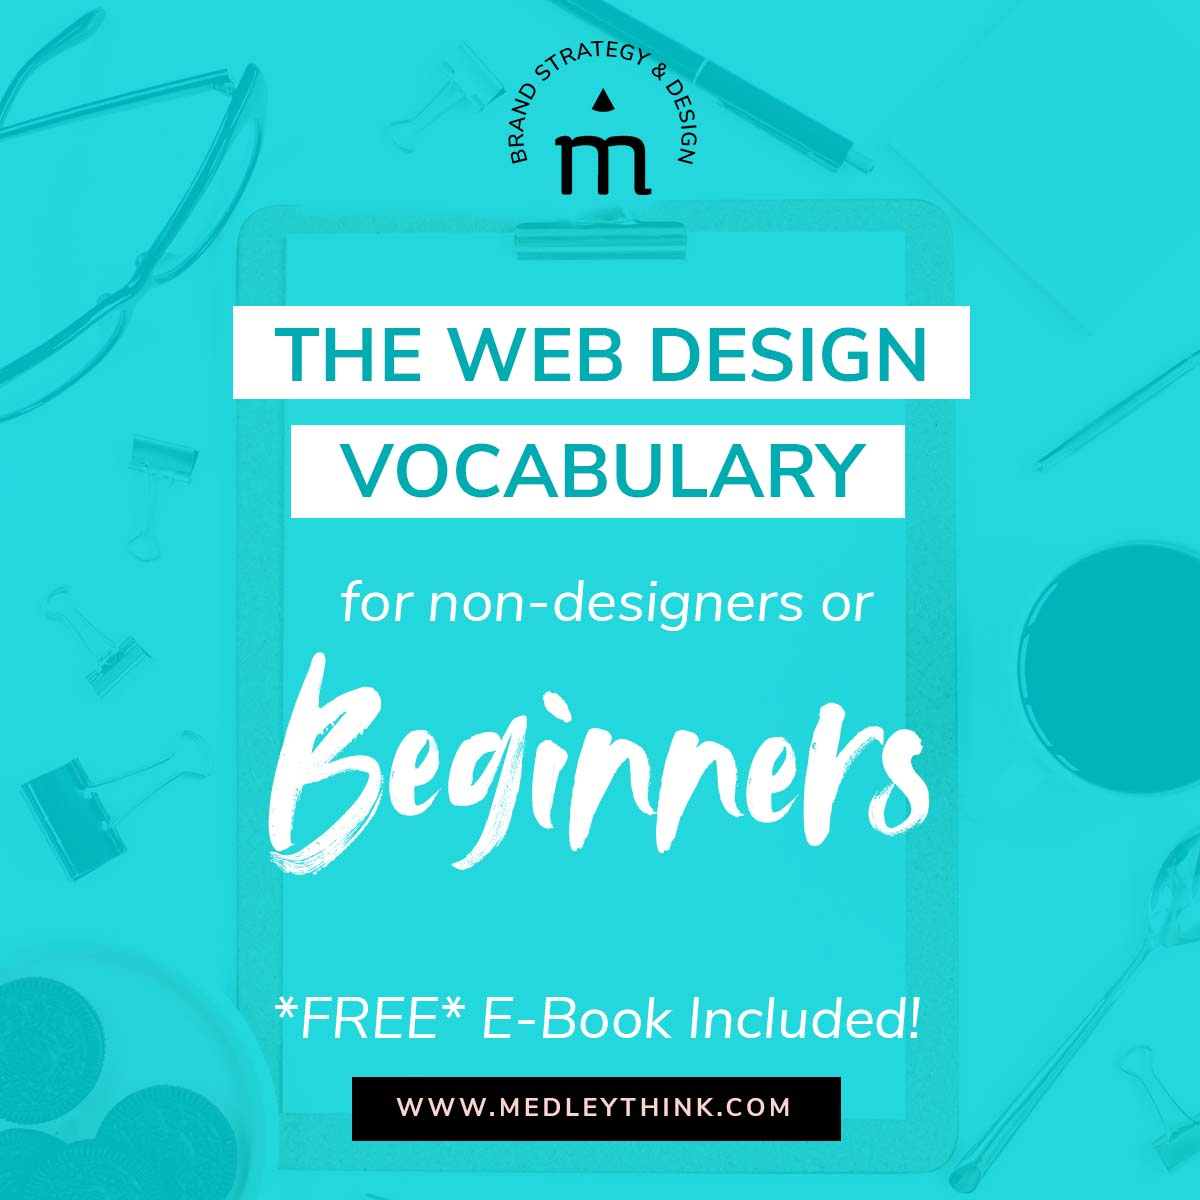 Are you DIYing your website or working with a designer for the first time, it can feel seriously overwhelming to even know how to speak the language! #webdesign #website #diywebsite #wedsitedesign